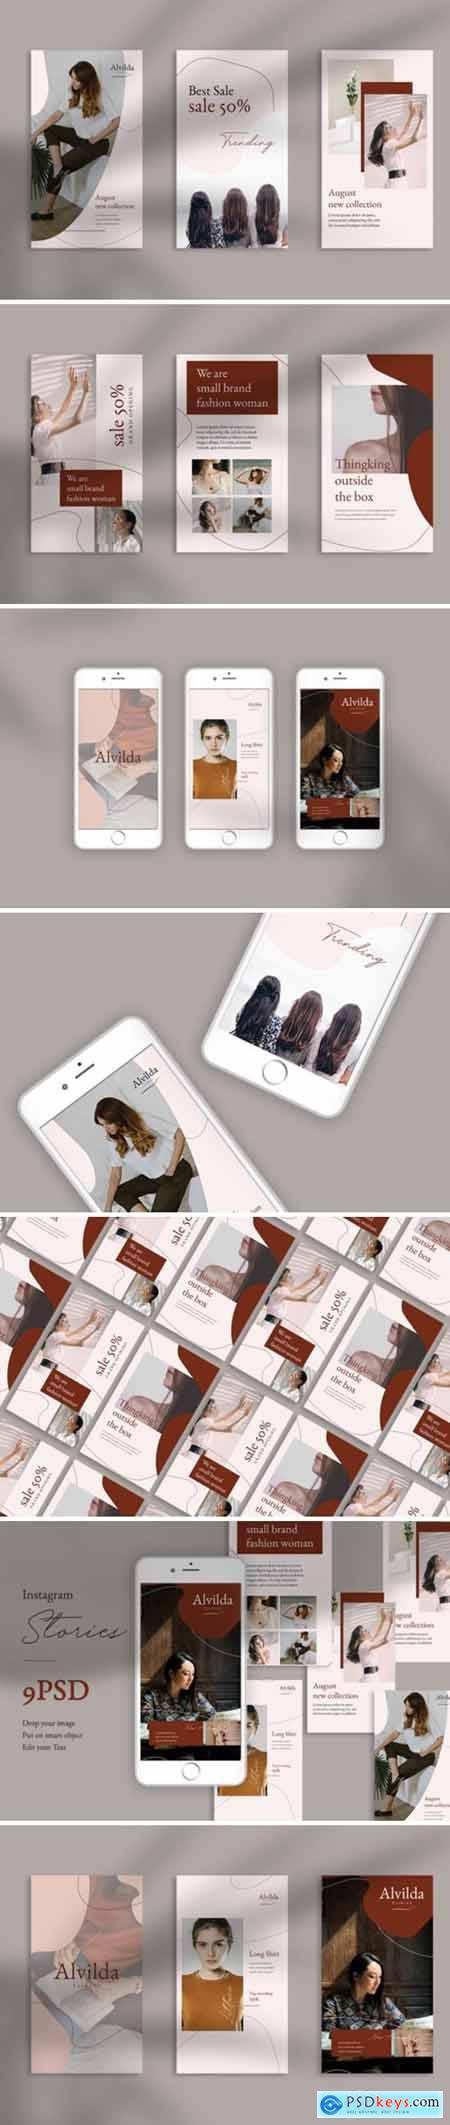 Alvida Instagram Stories Templates 1705817